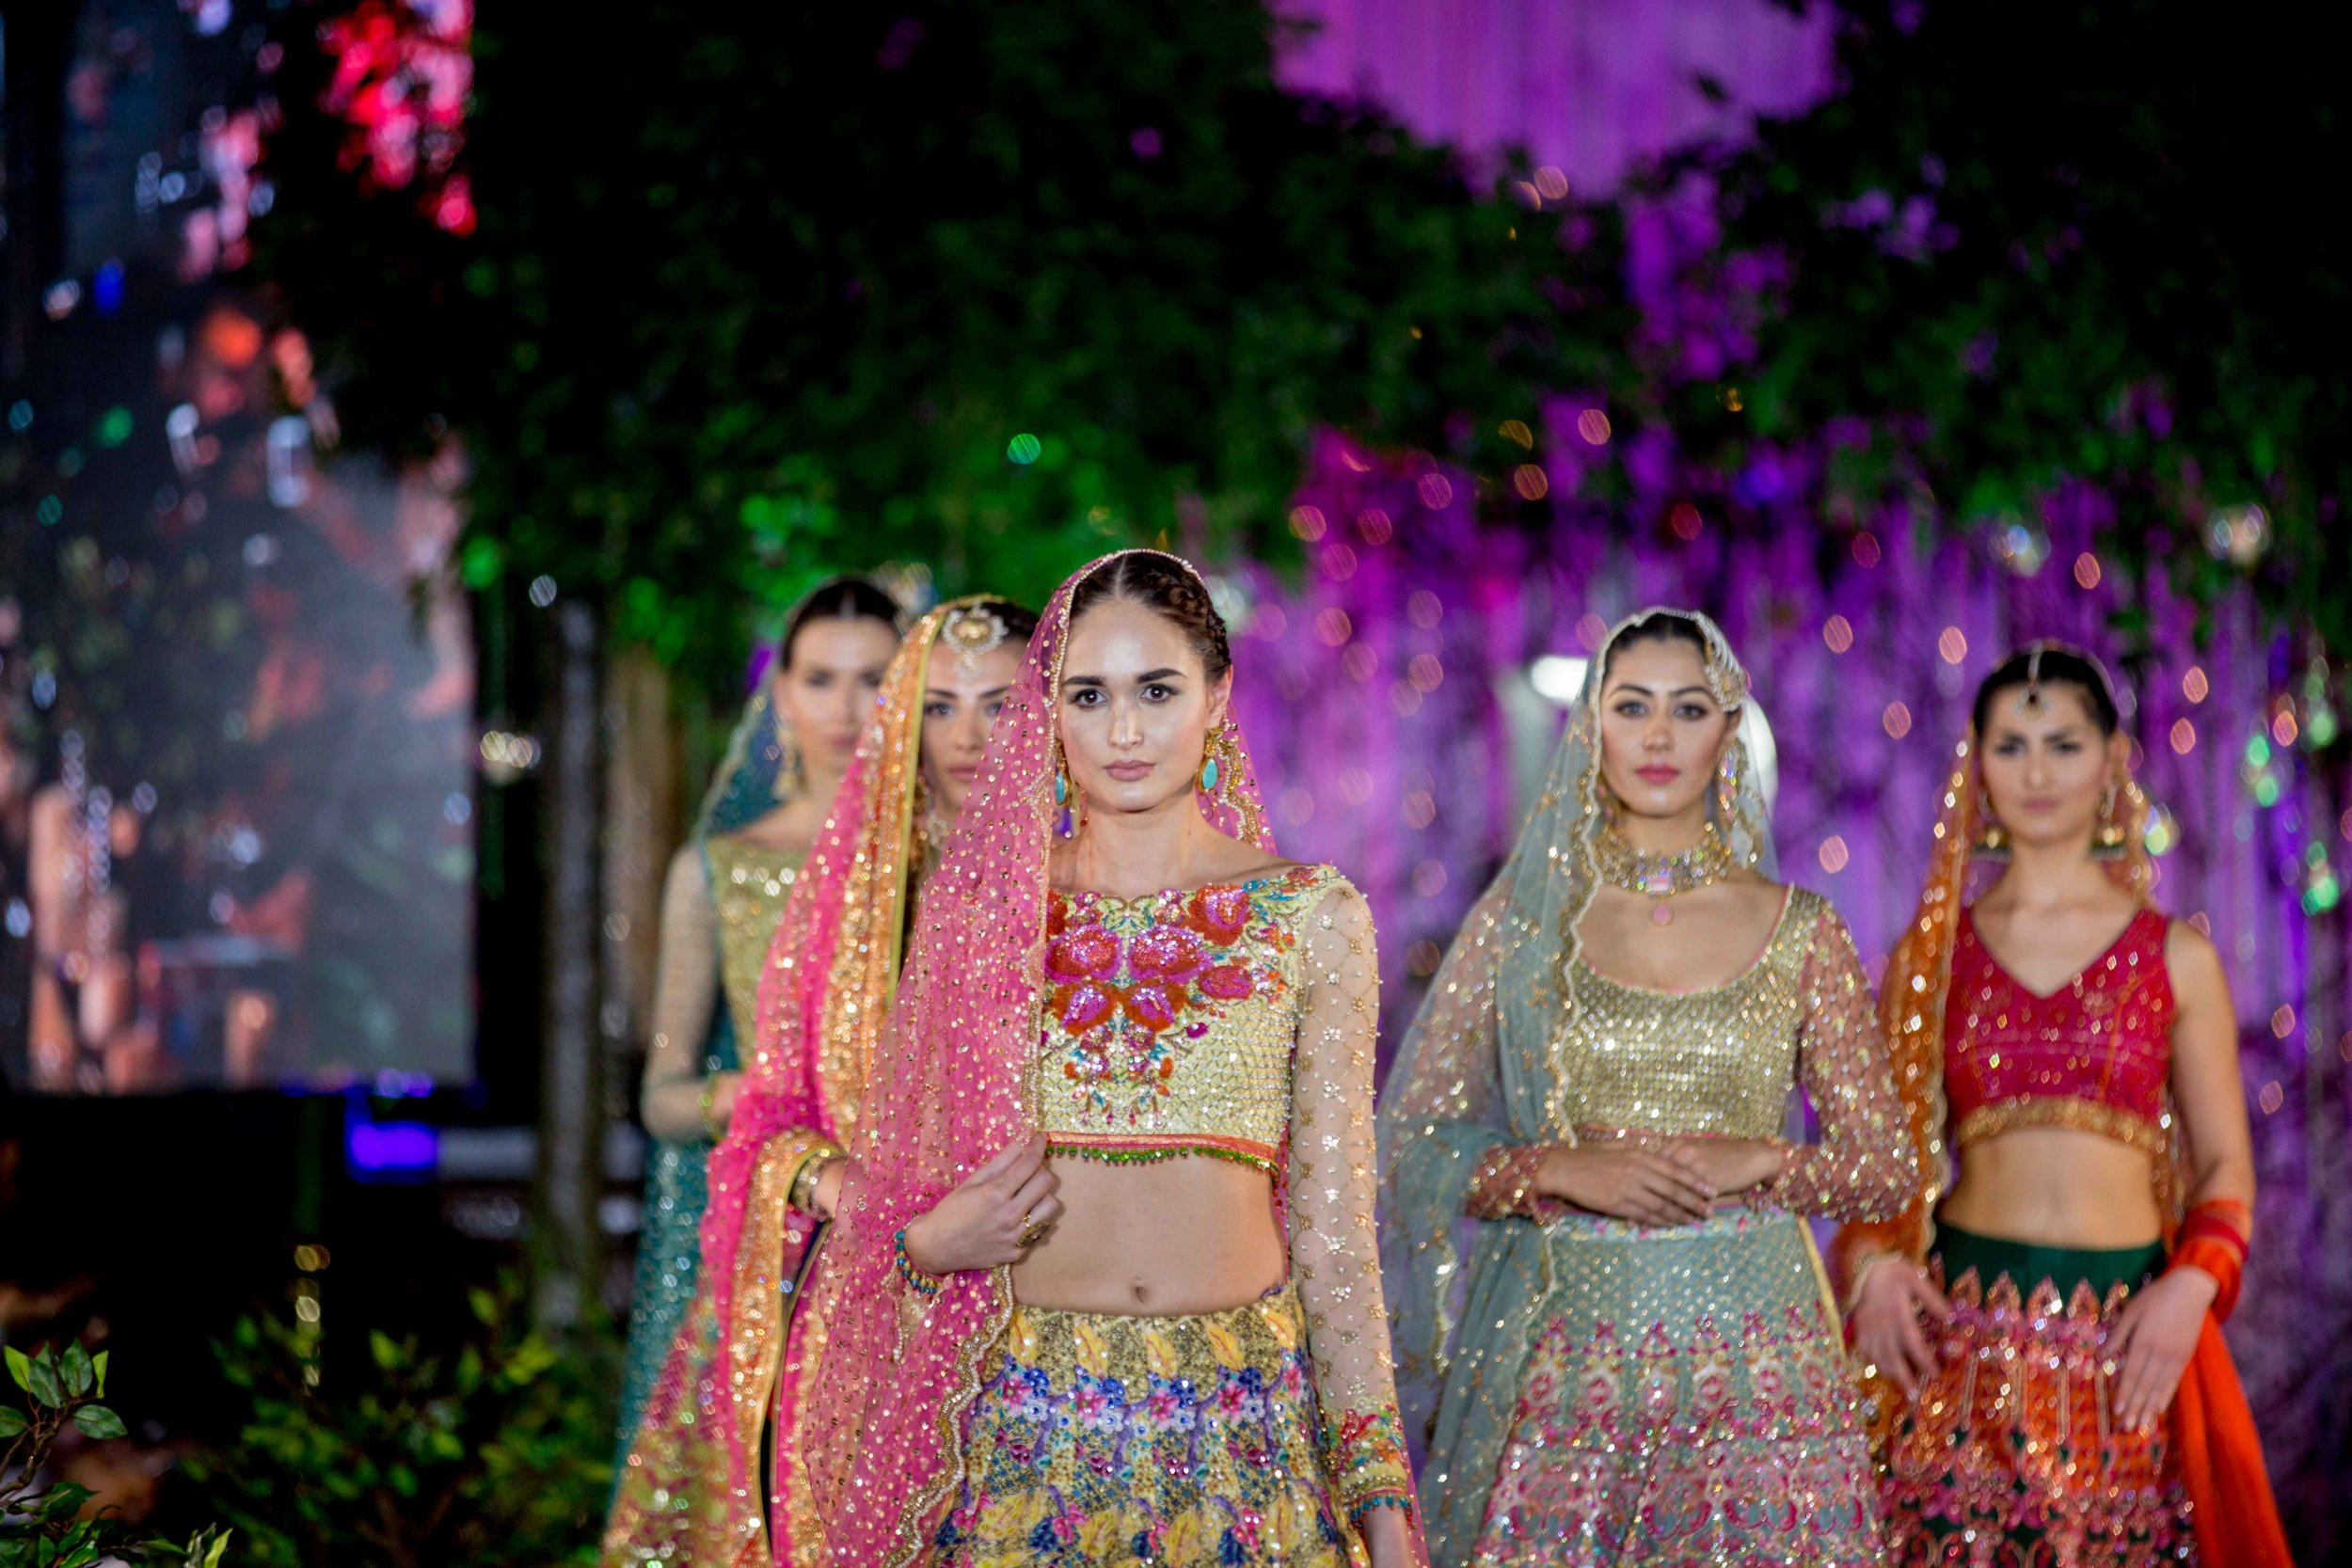 IPLF-IPL-Indian-Pakistani-London-Fashion-London-Week-catwalk-photographer-natalia-smith-photography-Nomi-Ansari-5.jpg